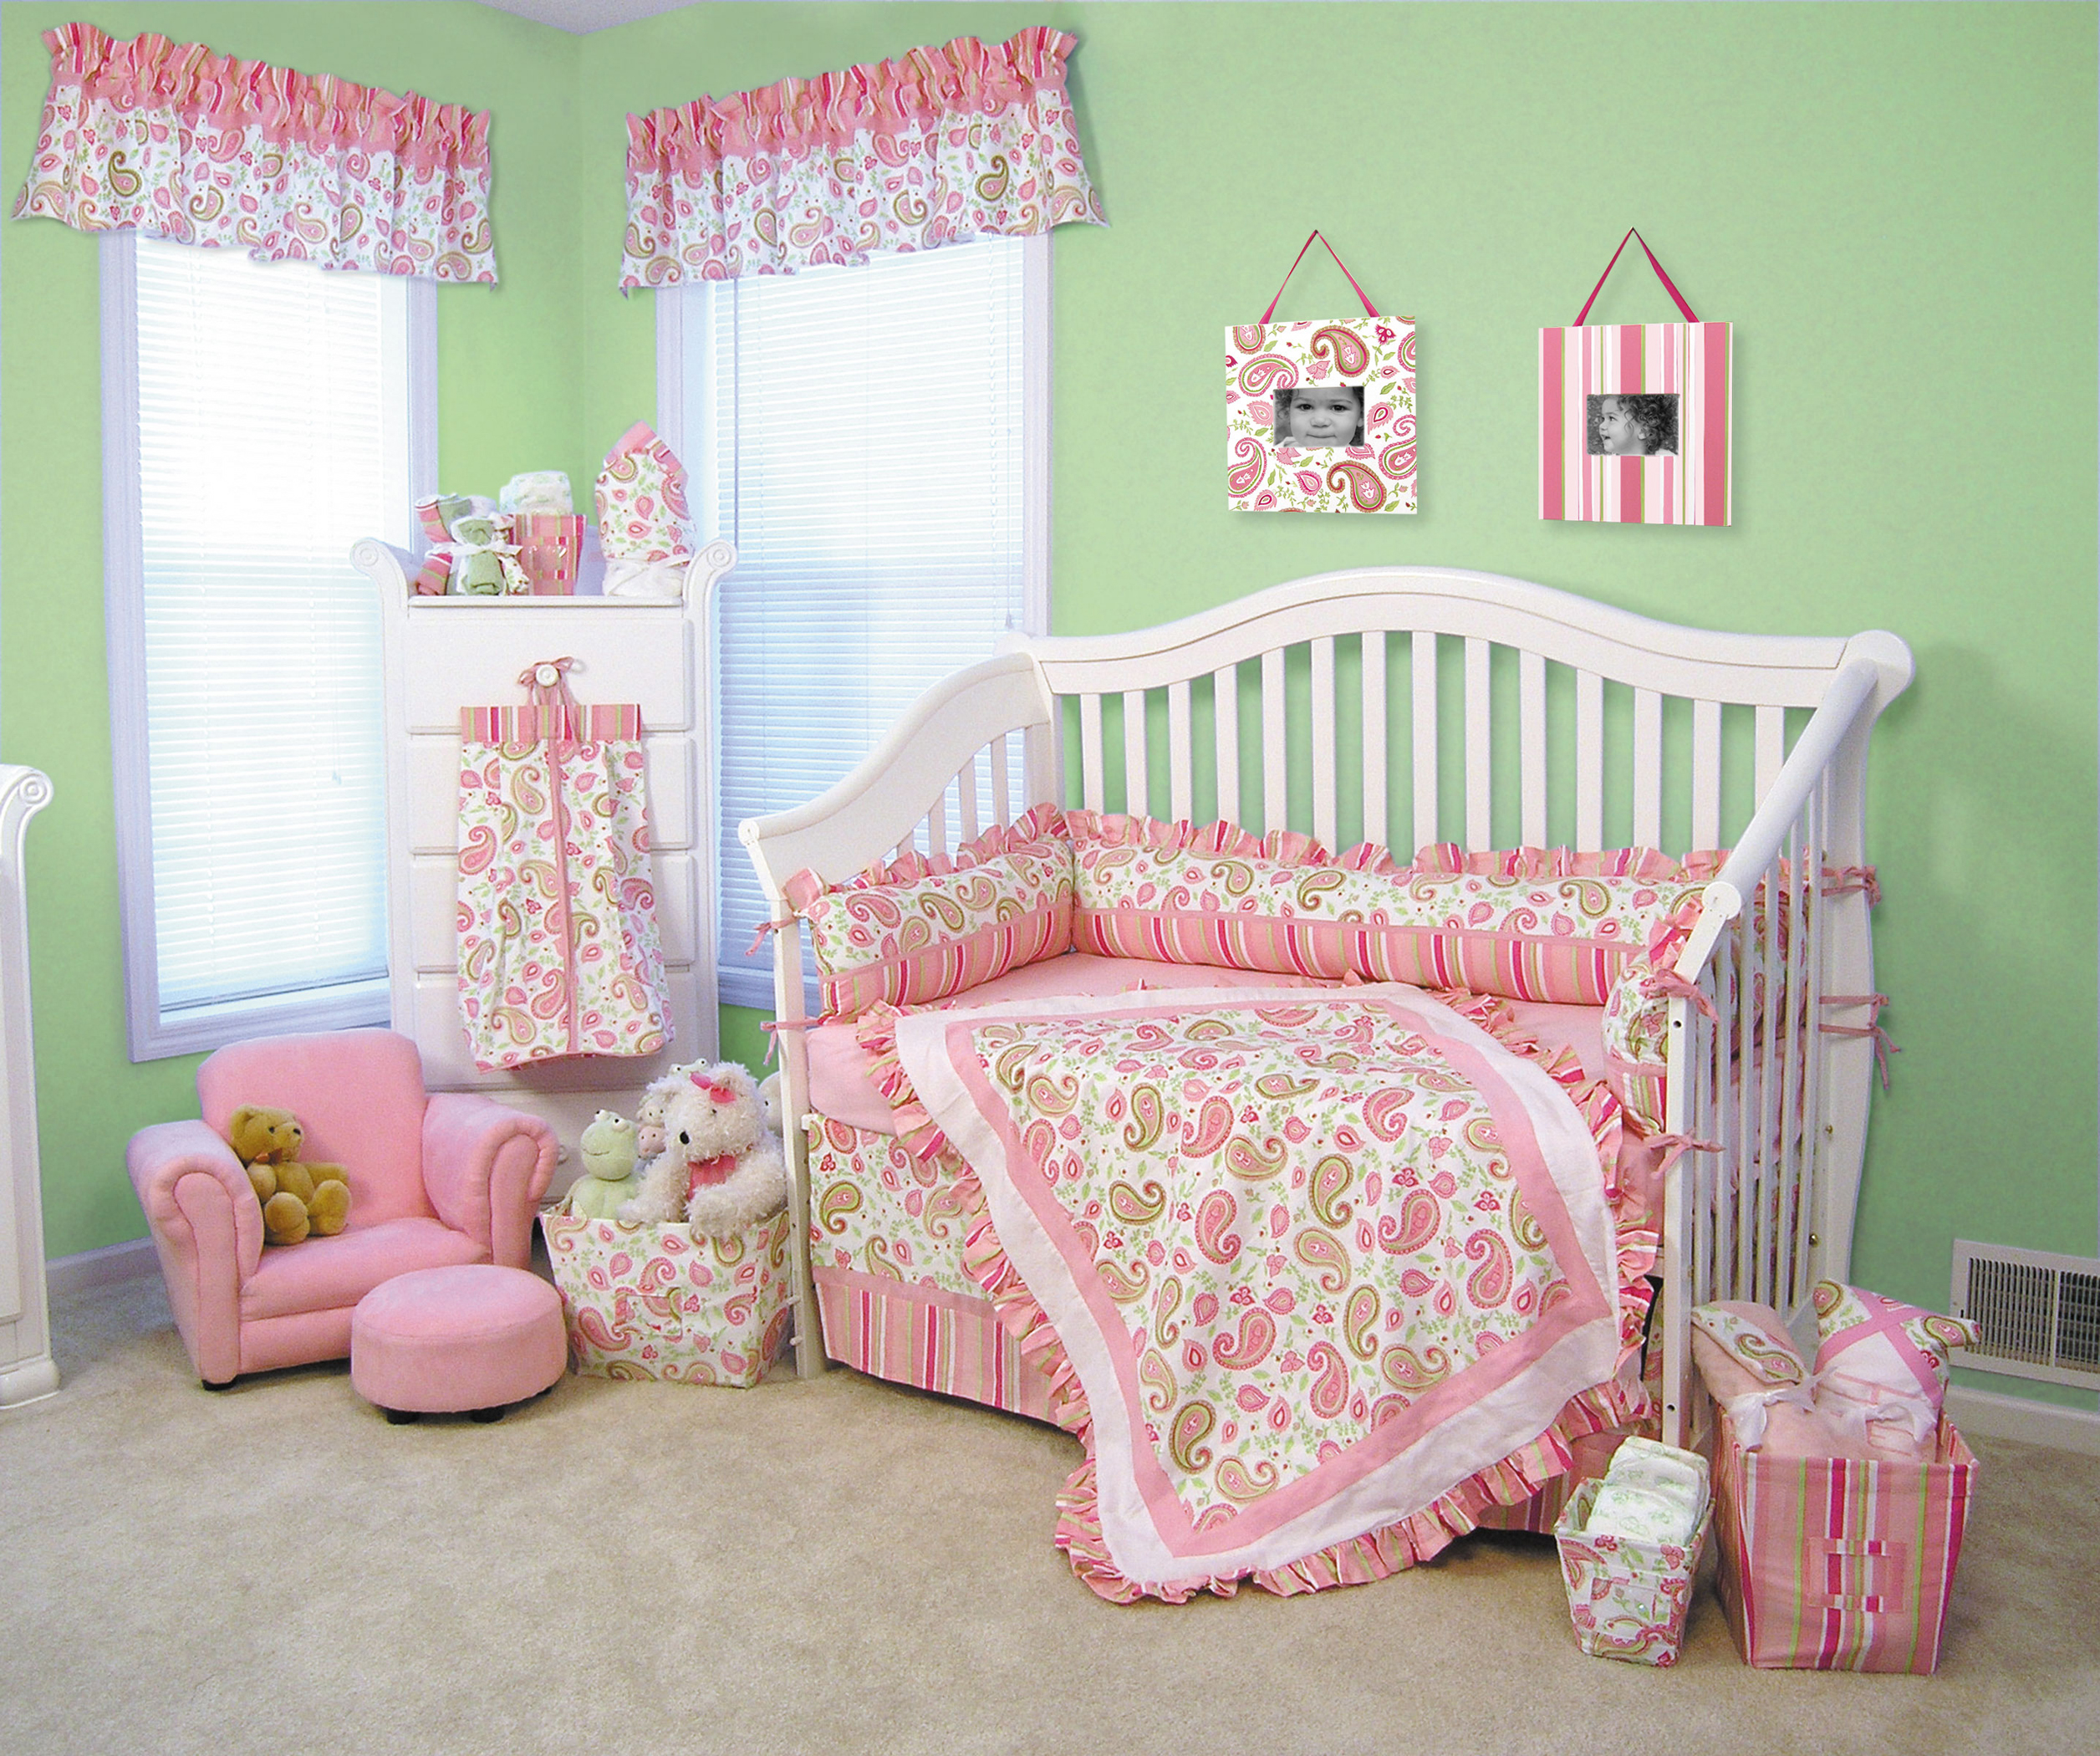 Stunning baby girl crib bedding designed in magenta color Baby girl bedding